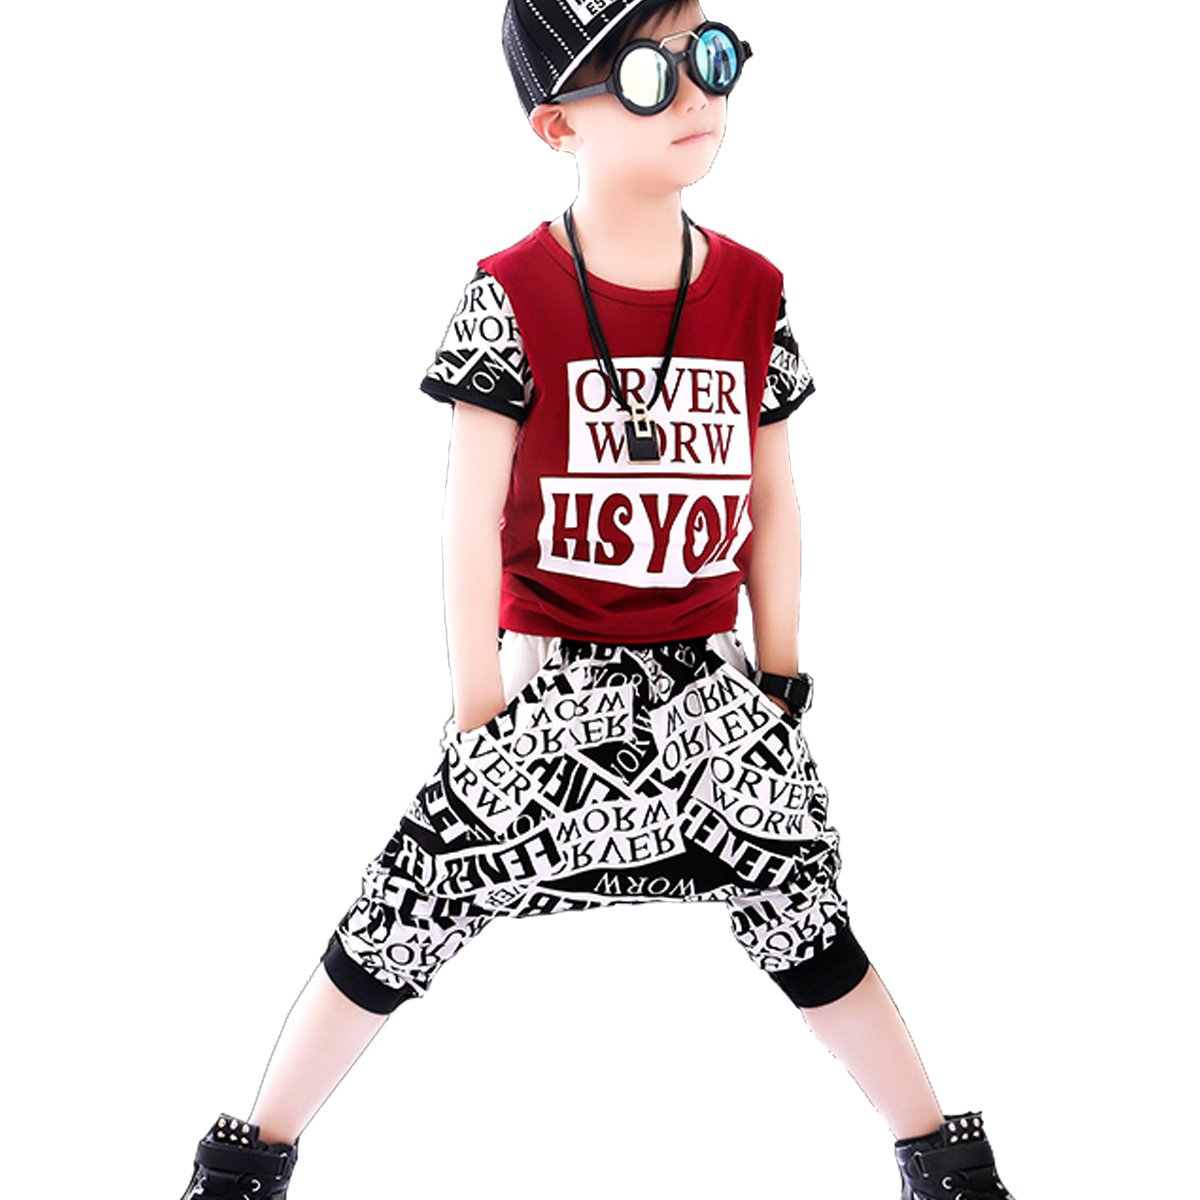 NABER Kids Boys' Summer Fashion T-Shirt & Hip Pop Shorts Clothing Set Age 3-11 Years